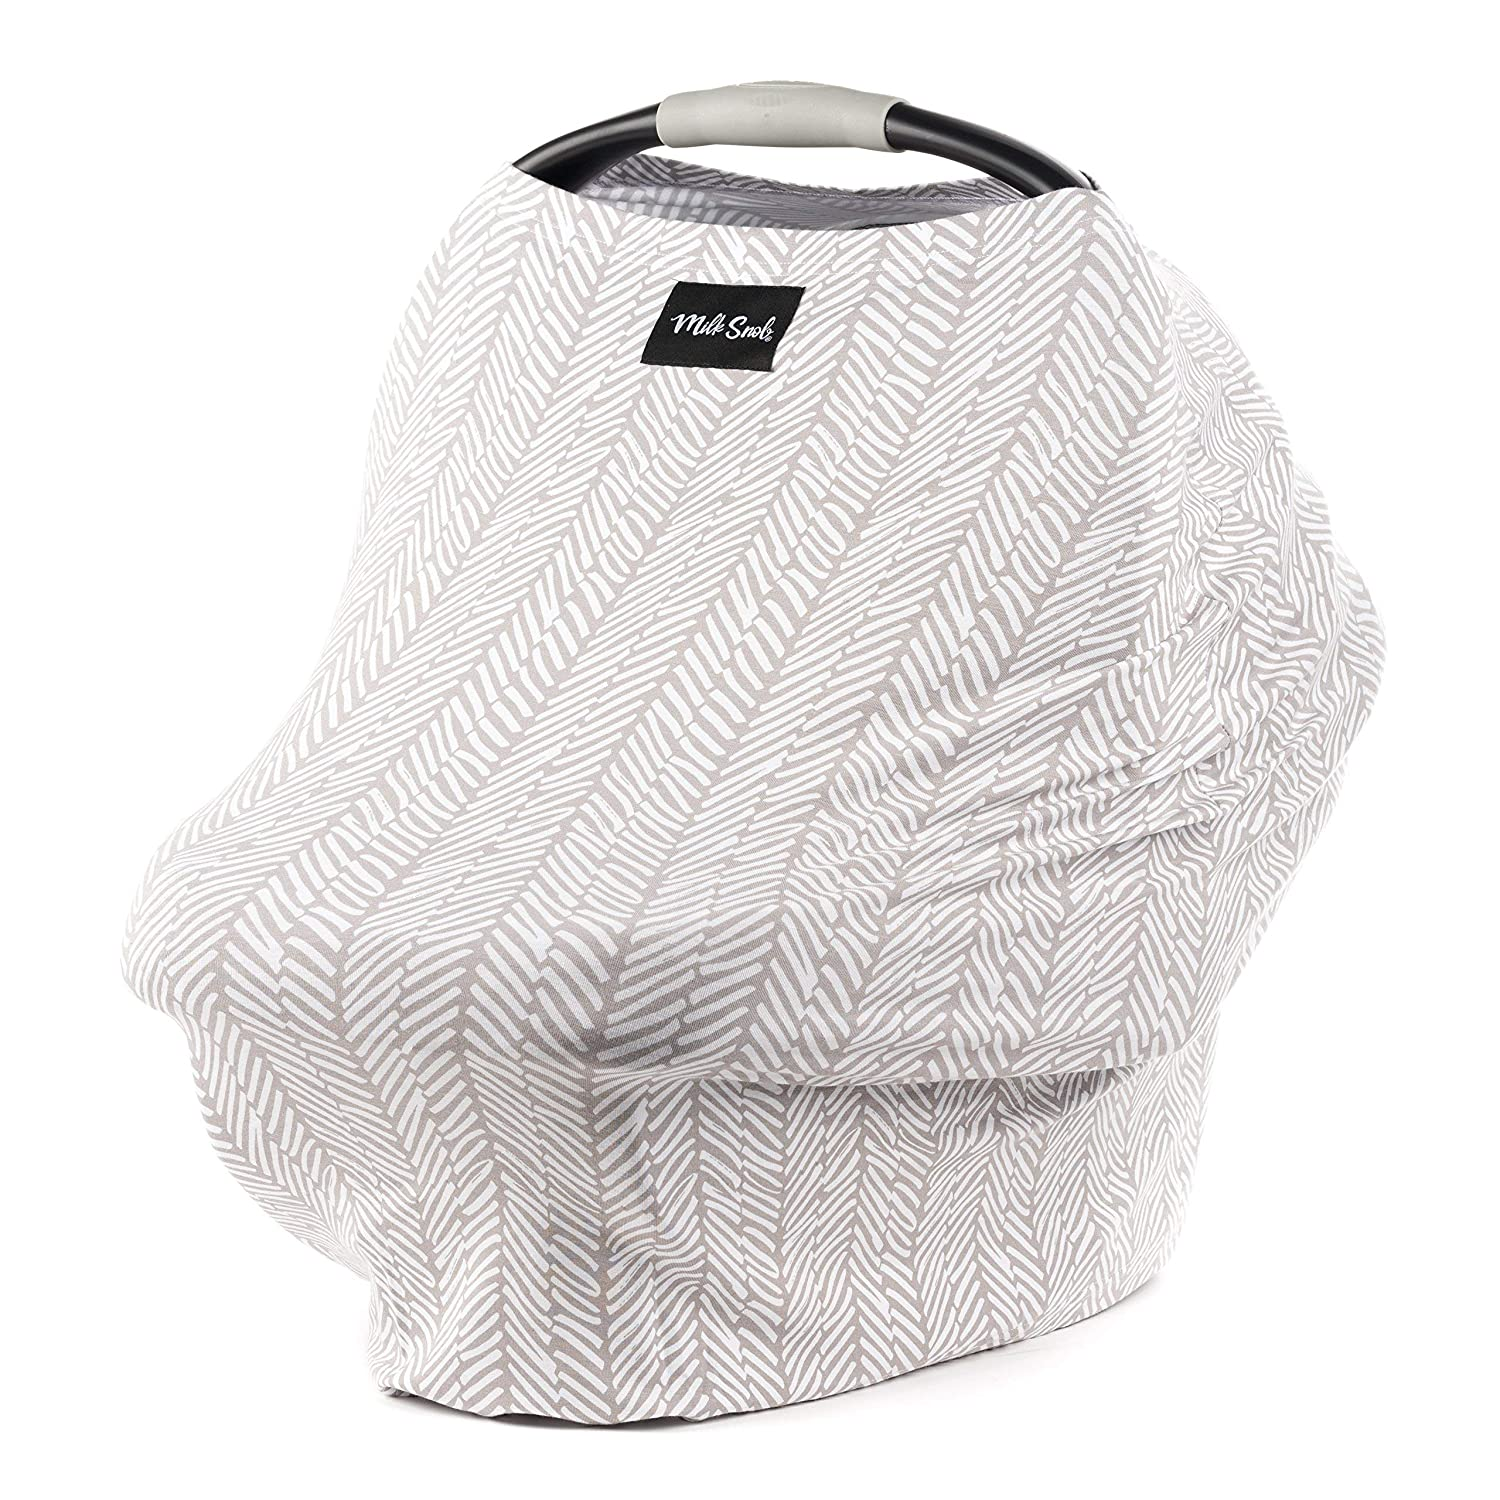 AS SEEN ON SHARK TANK The Original Milk Snob Infant Car Seat Cover and Nursing Cover Multi-Use 360/° Coverage Breathable Stretchy Herringbone